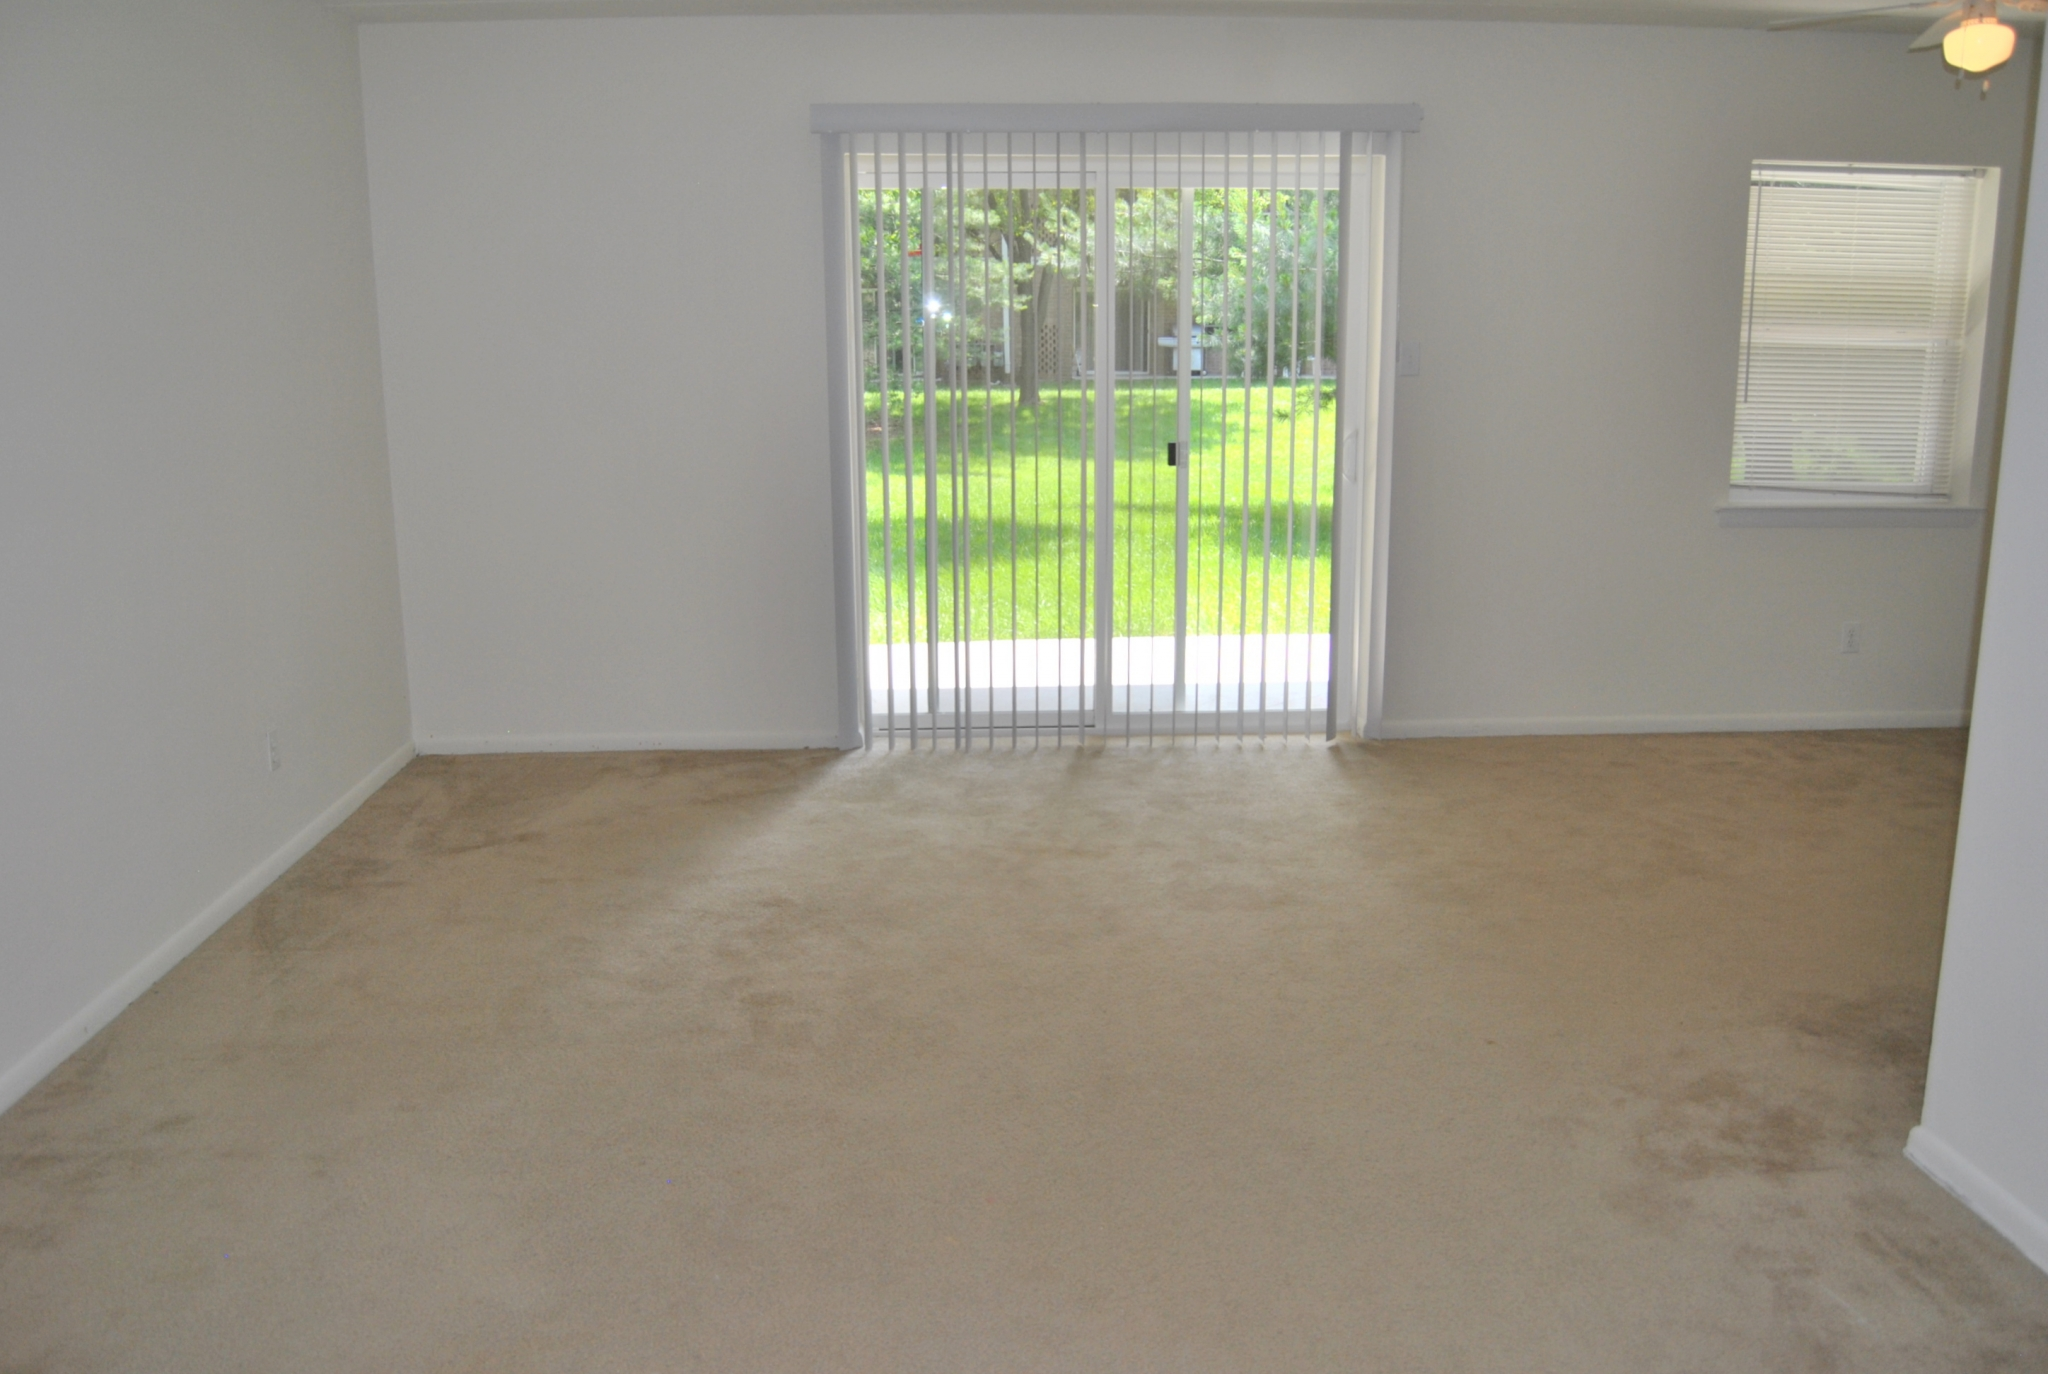 Westover Village Sample Living Room with Beige Carpet and Patio Door | Apartments near Norristown, PA